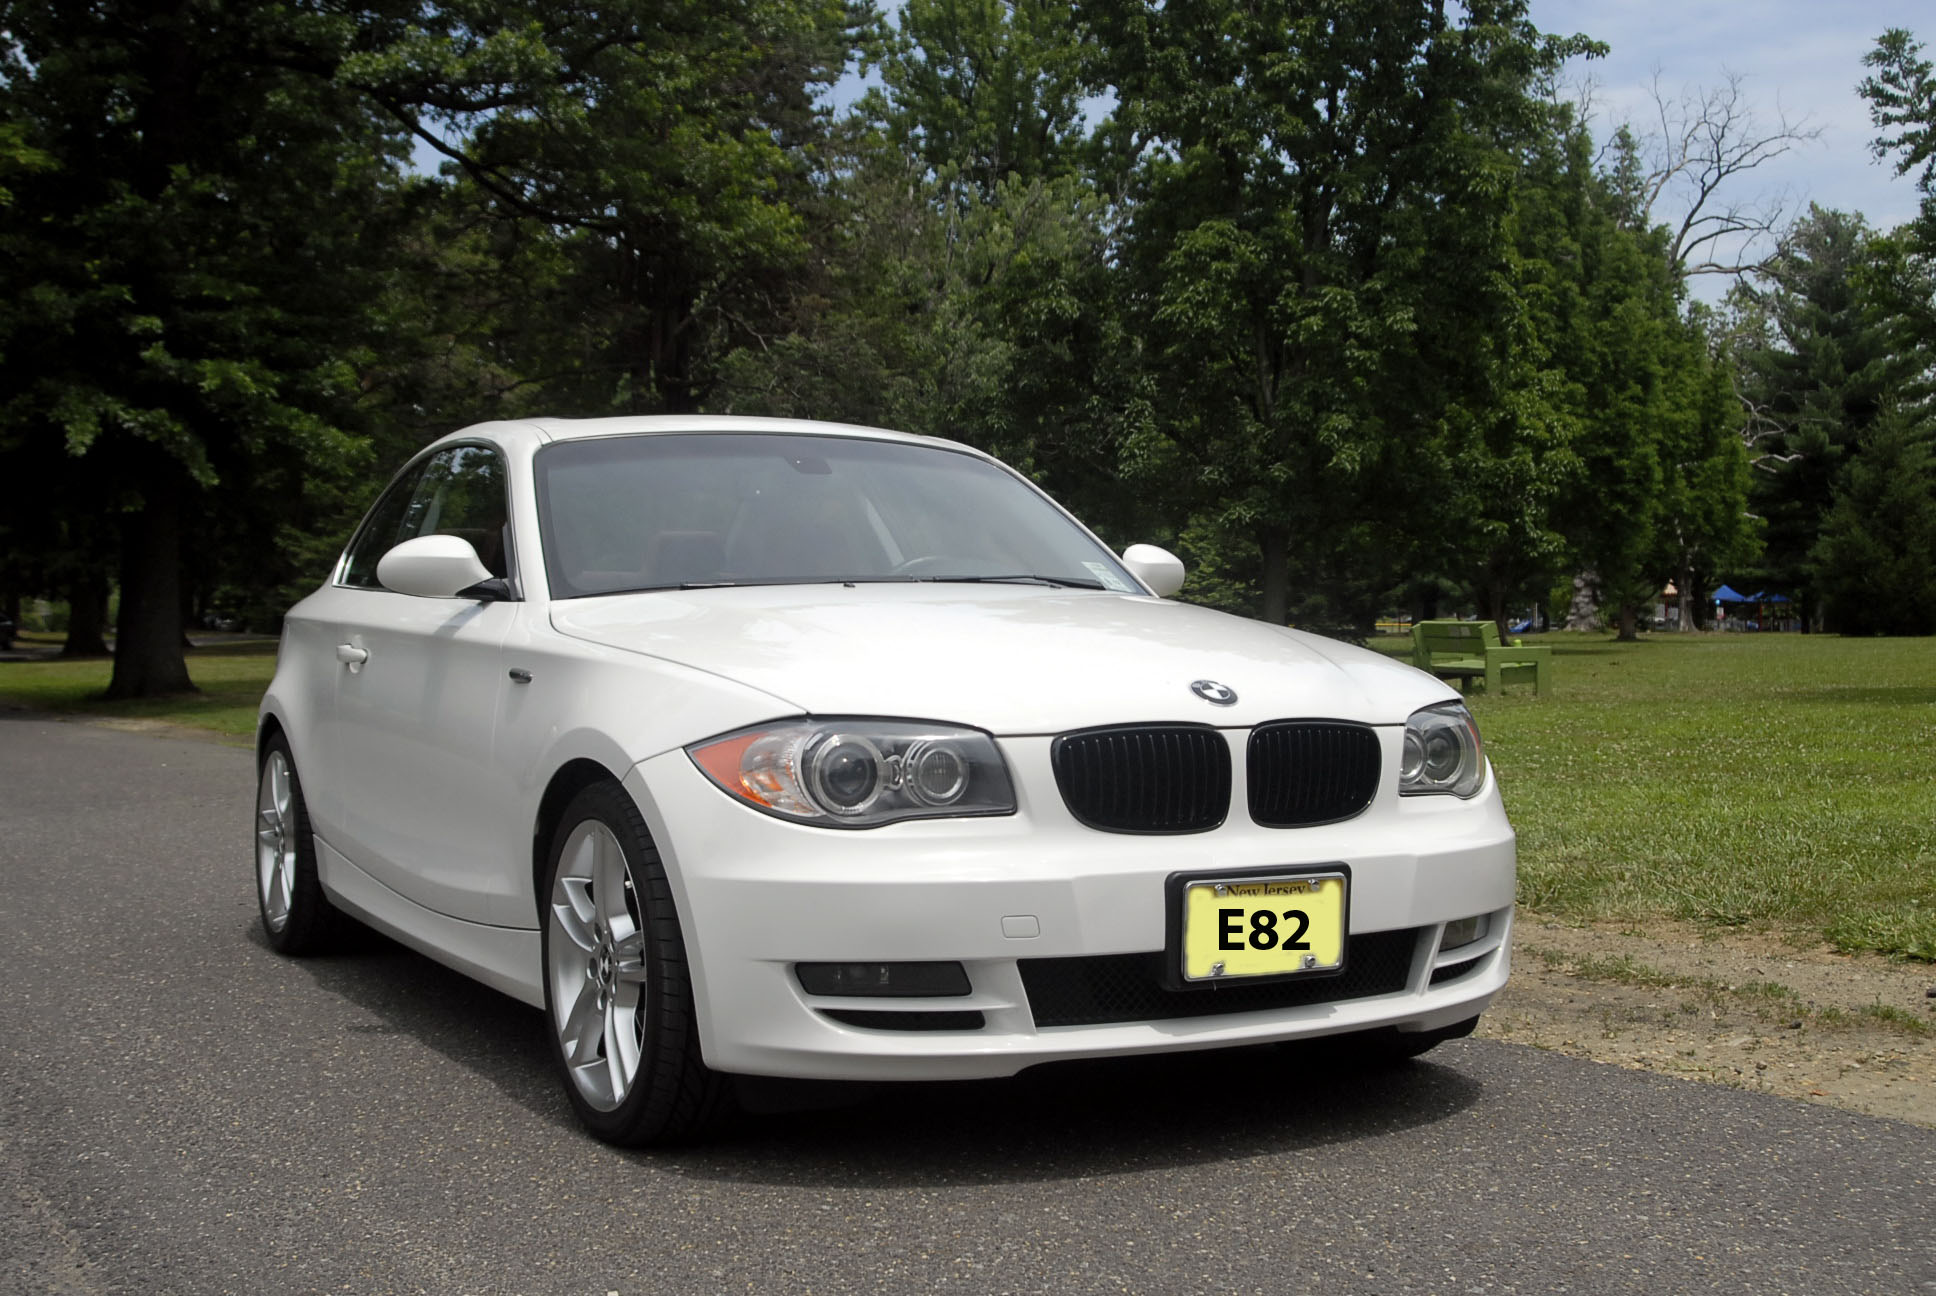 2008 bmw 128i coupe 1 4 mile drag racing timeslip specs 0 60. Black Bedroom Furniture Sets. Home Design Ideas